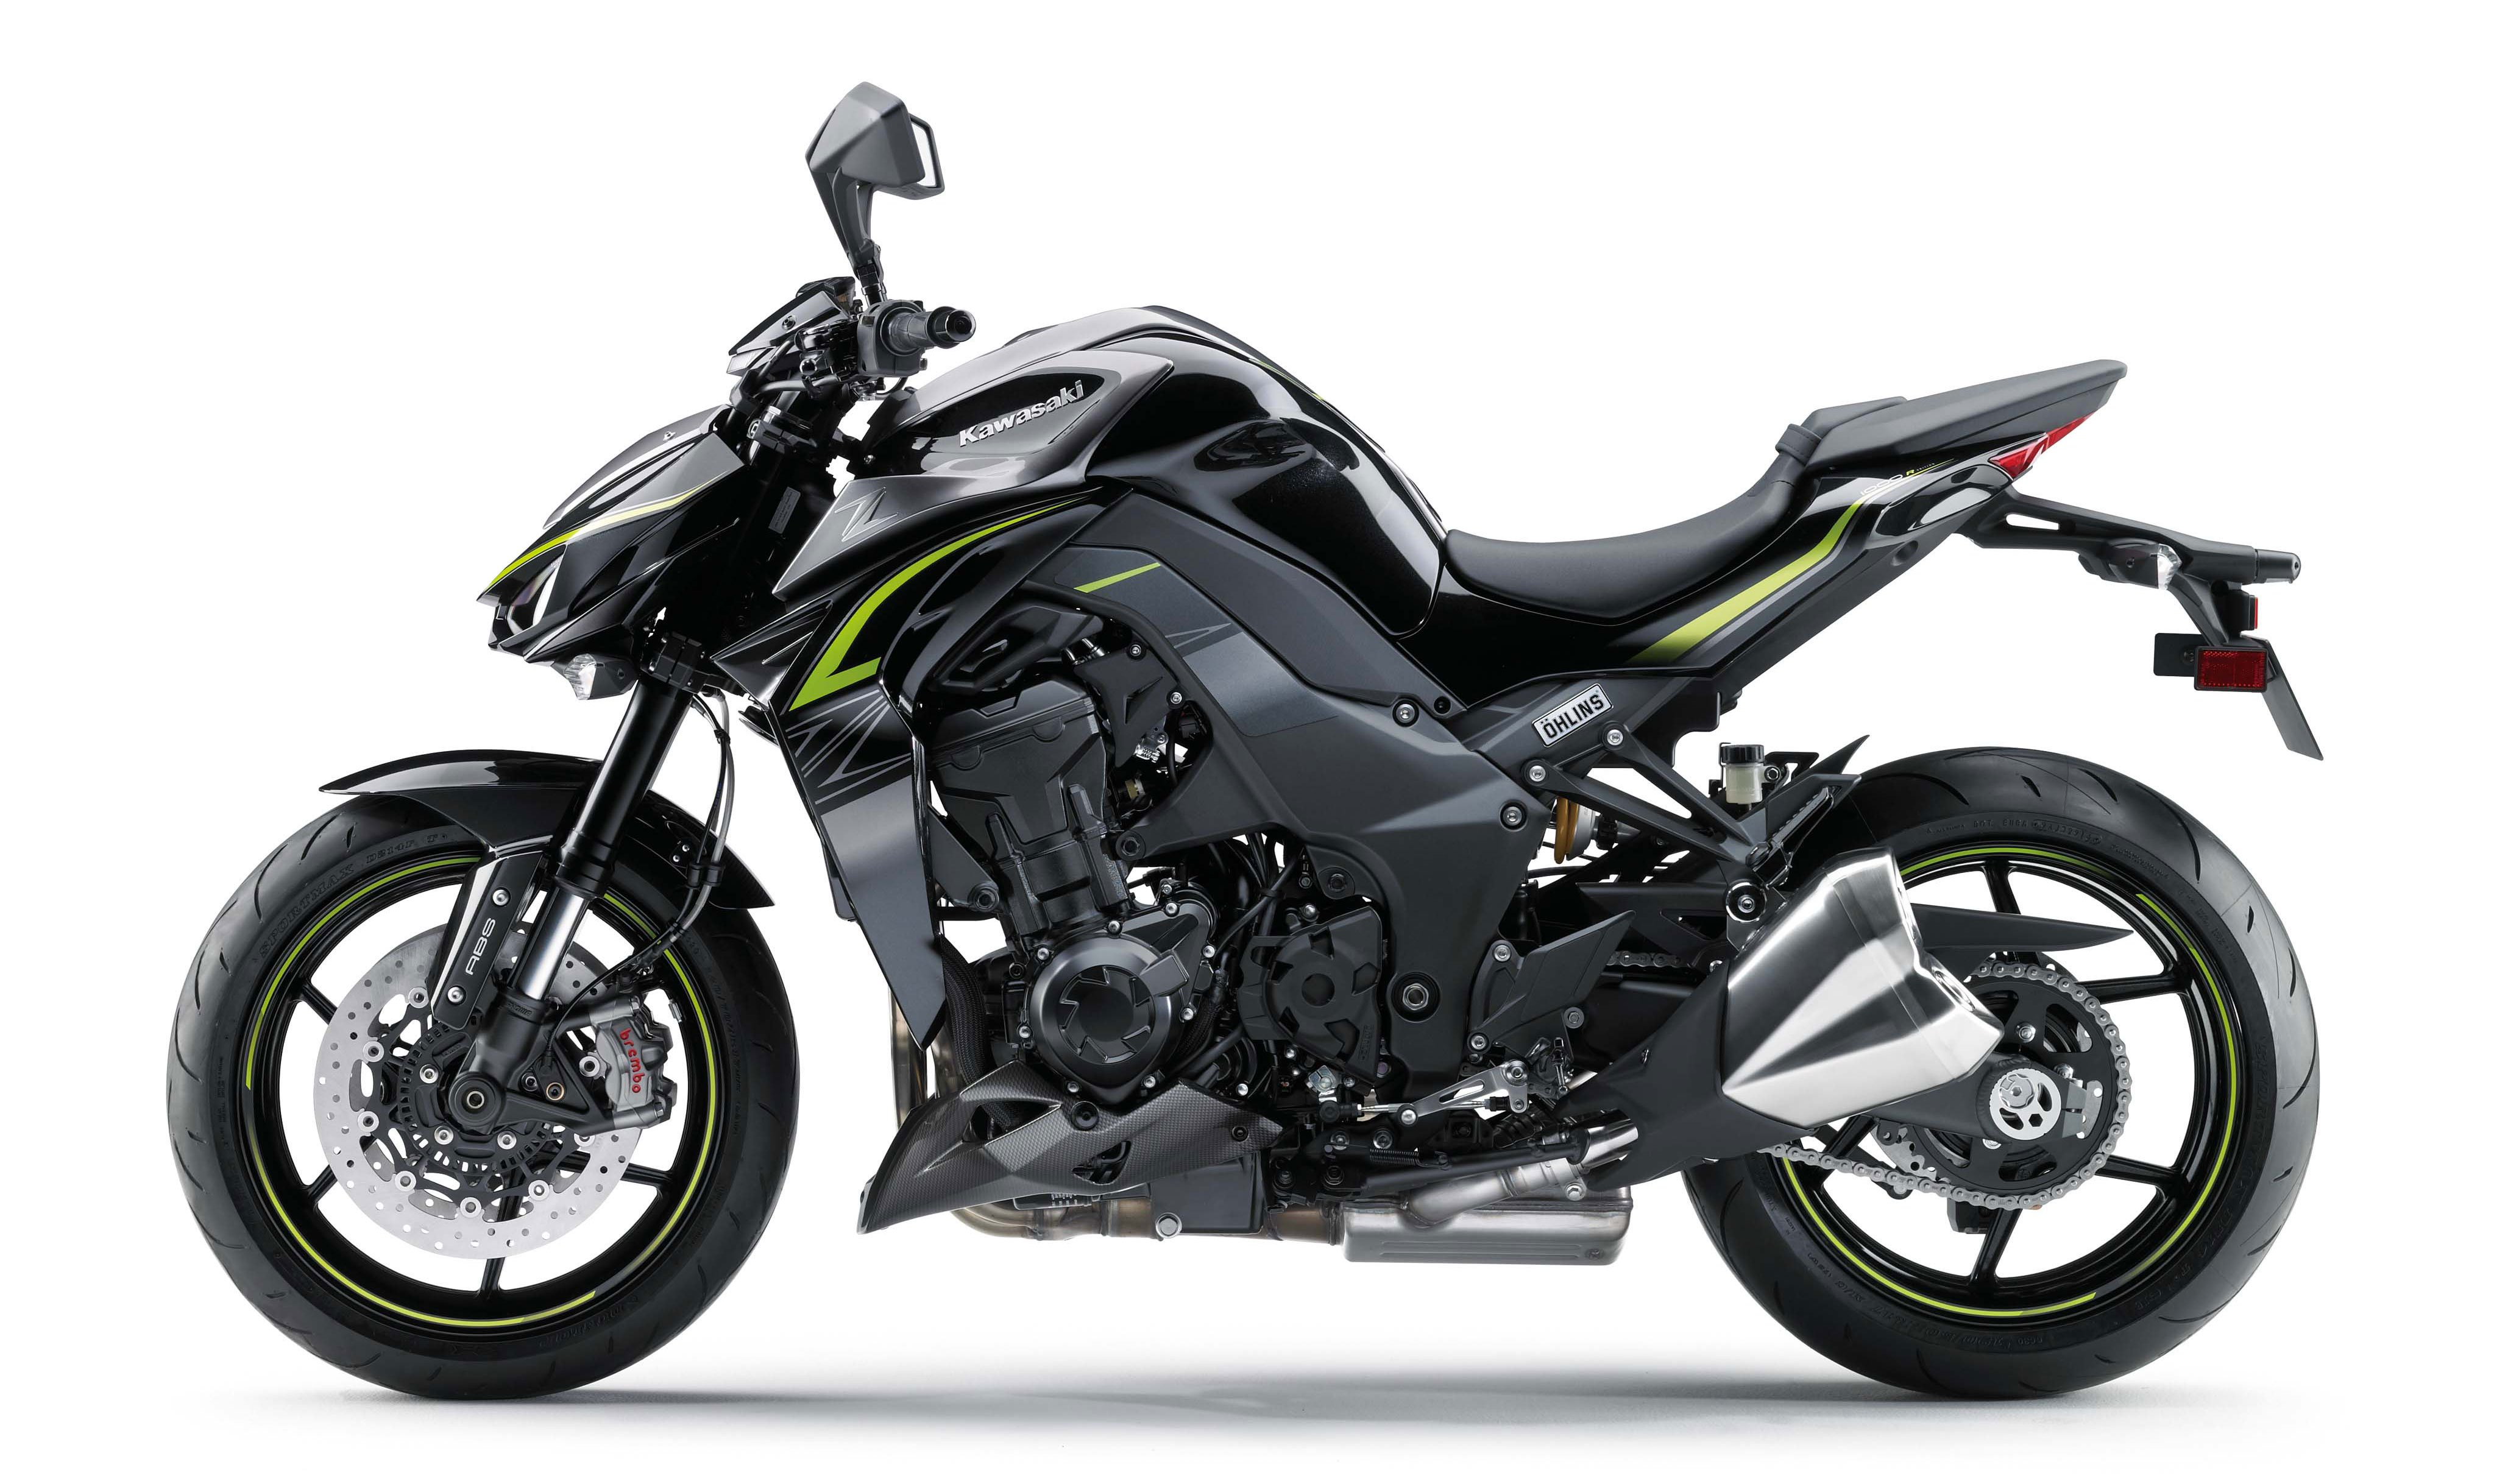 Kawasaki Z1000 Photo And Video Review Comments Wiring Diagram